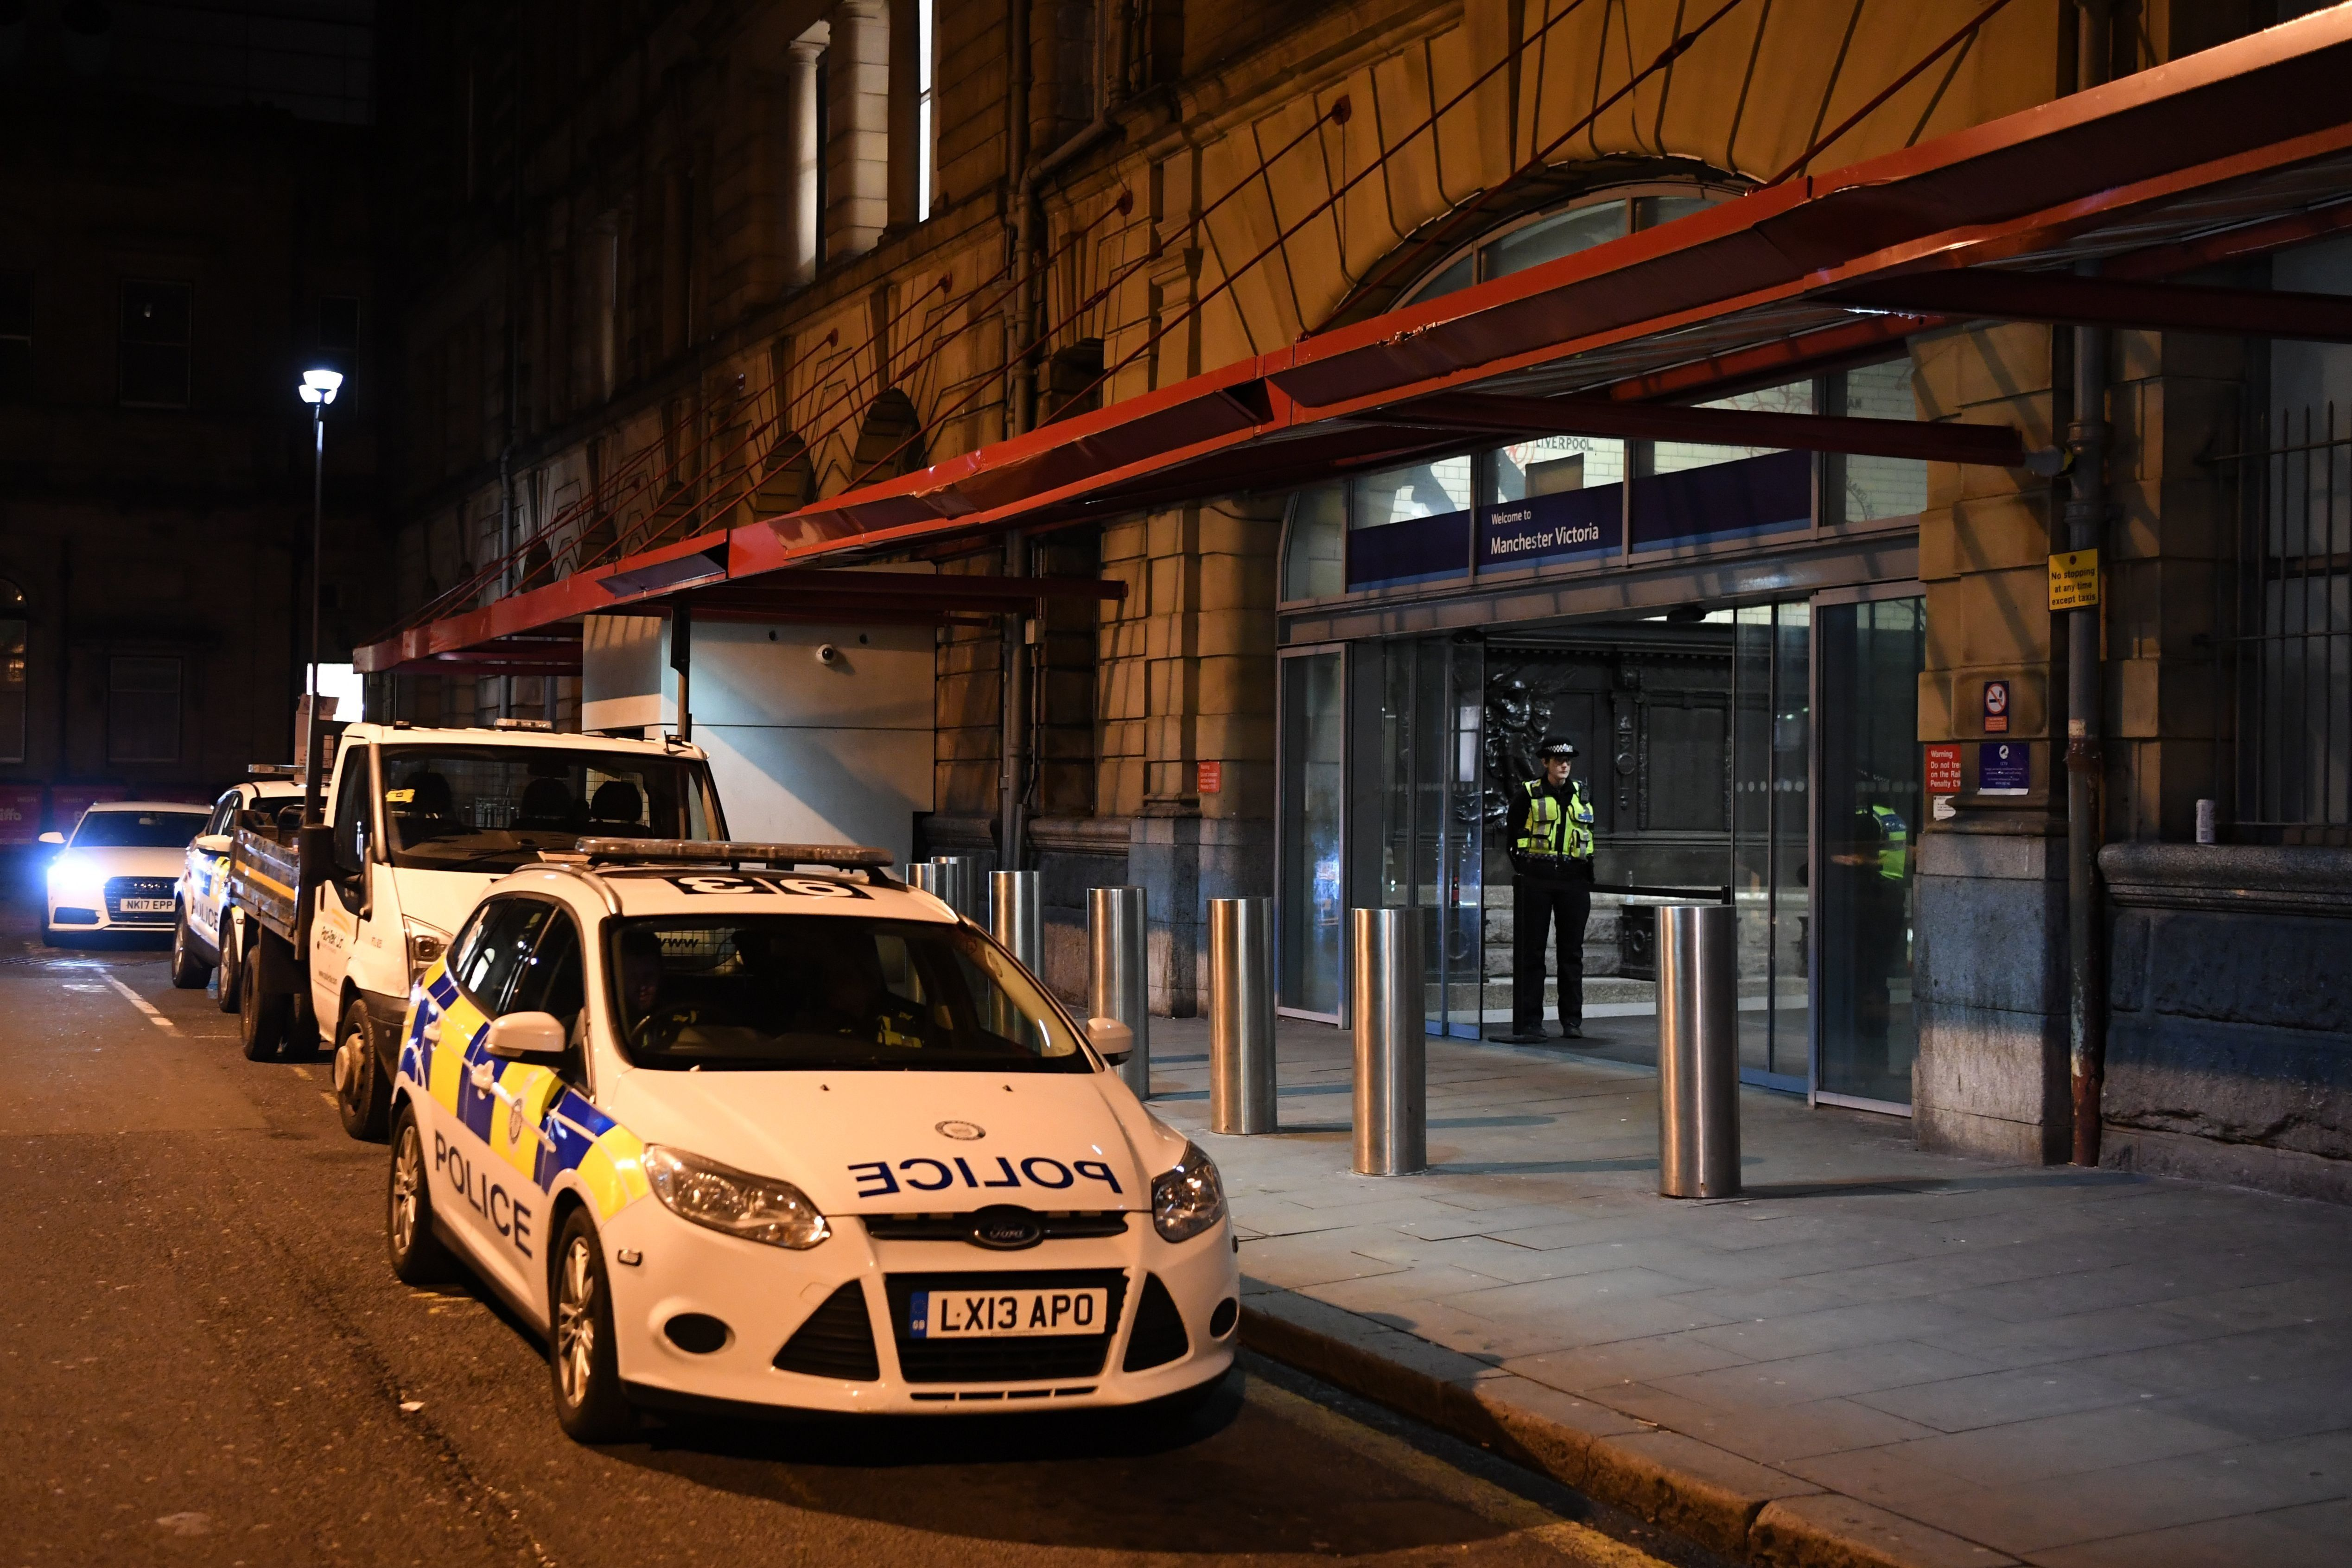 Manchester New Year's Eve Stabbing Sparks Terrorism